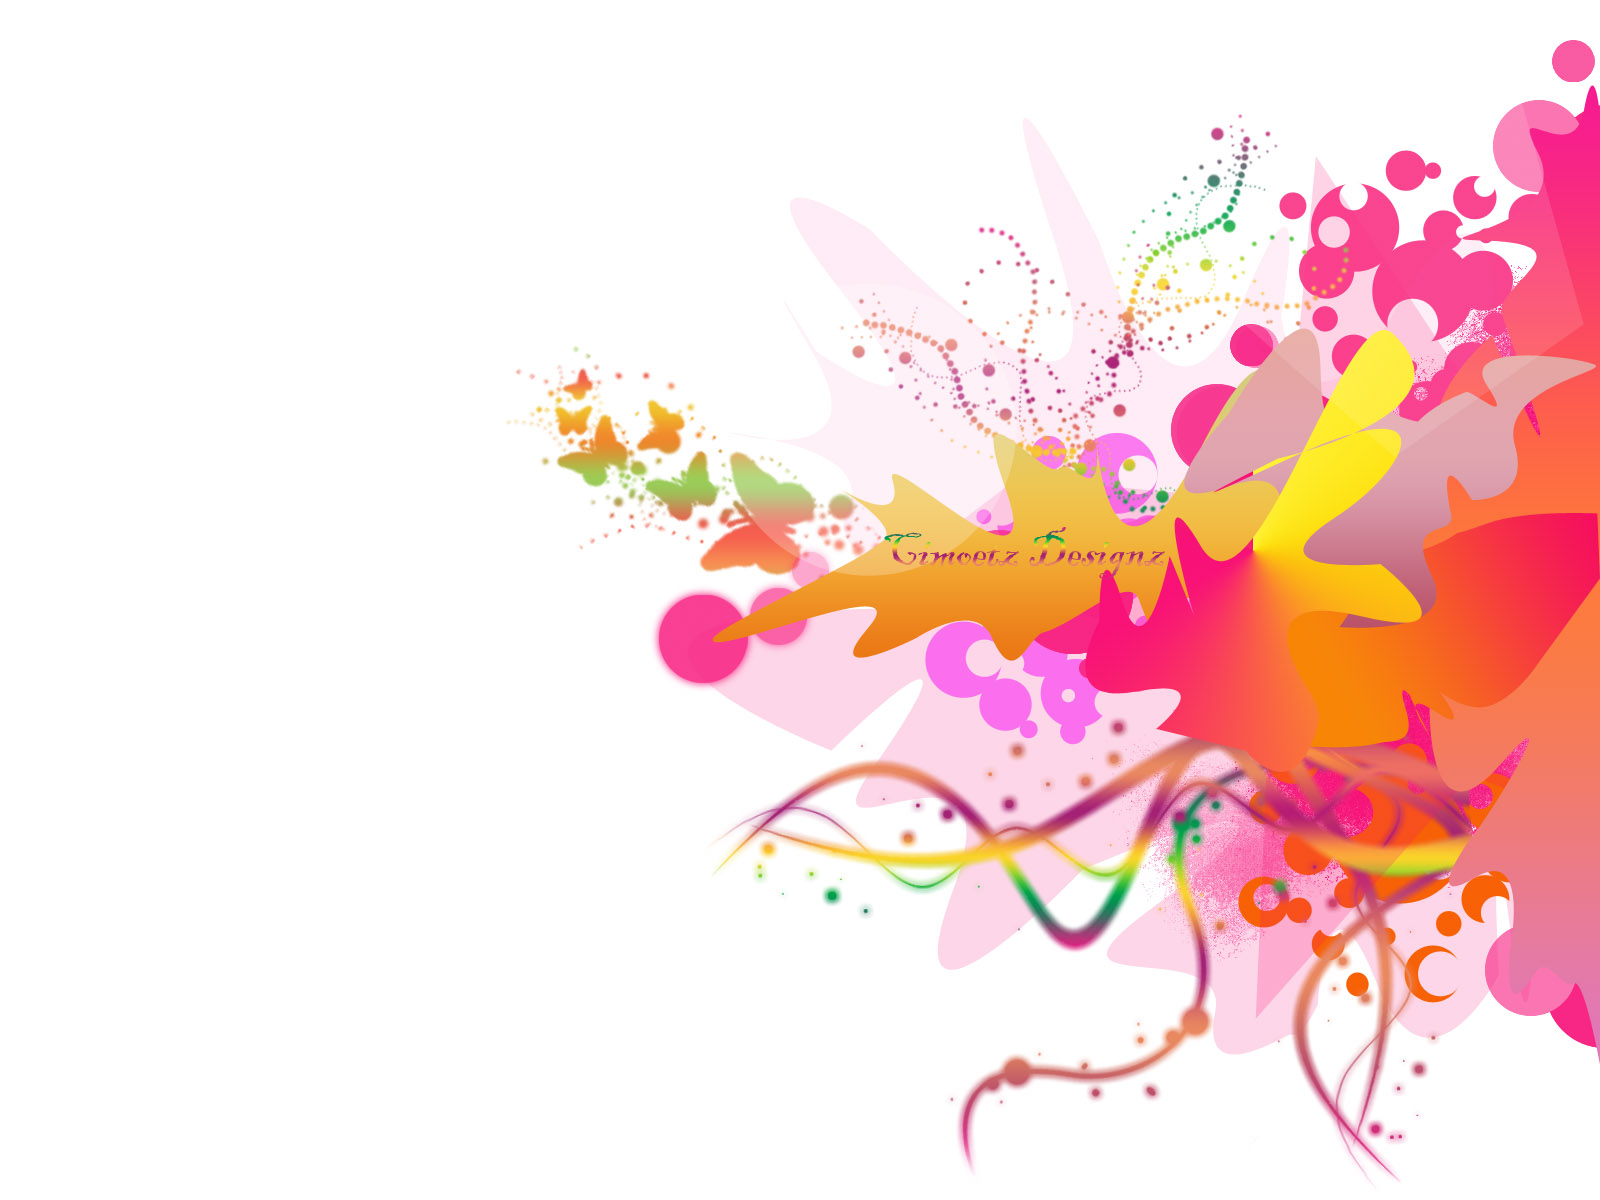 Bloomy Design Colorful Power Point Backgrounds, Sprinkle Bloomy Design ...